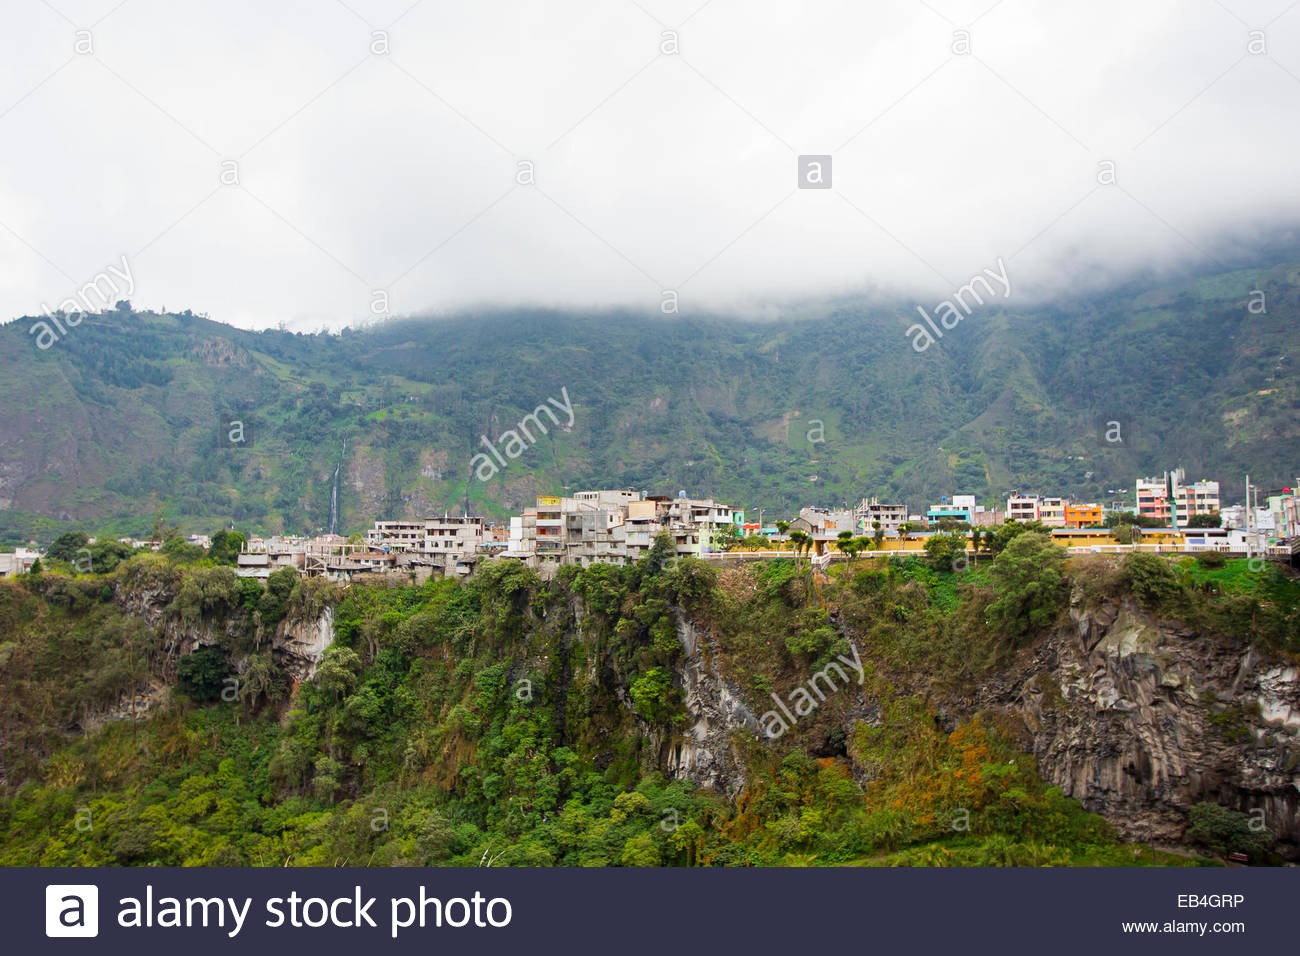 Low-lying clouds over the city of Banos de Agua Santa, at the foot of the Tungurahua volcano. - Stock Image